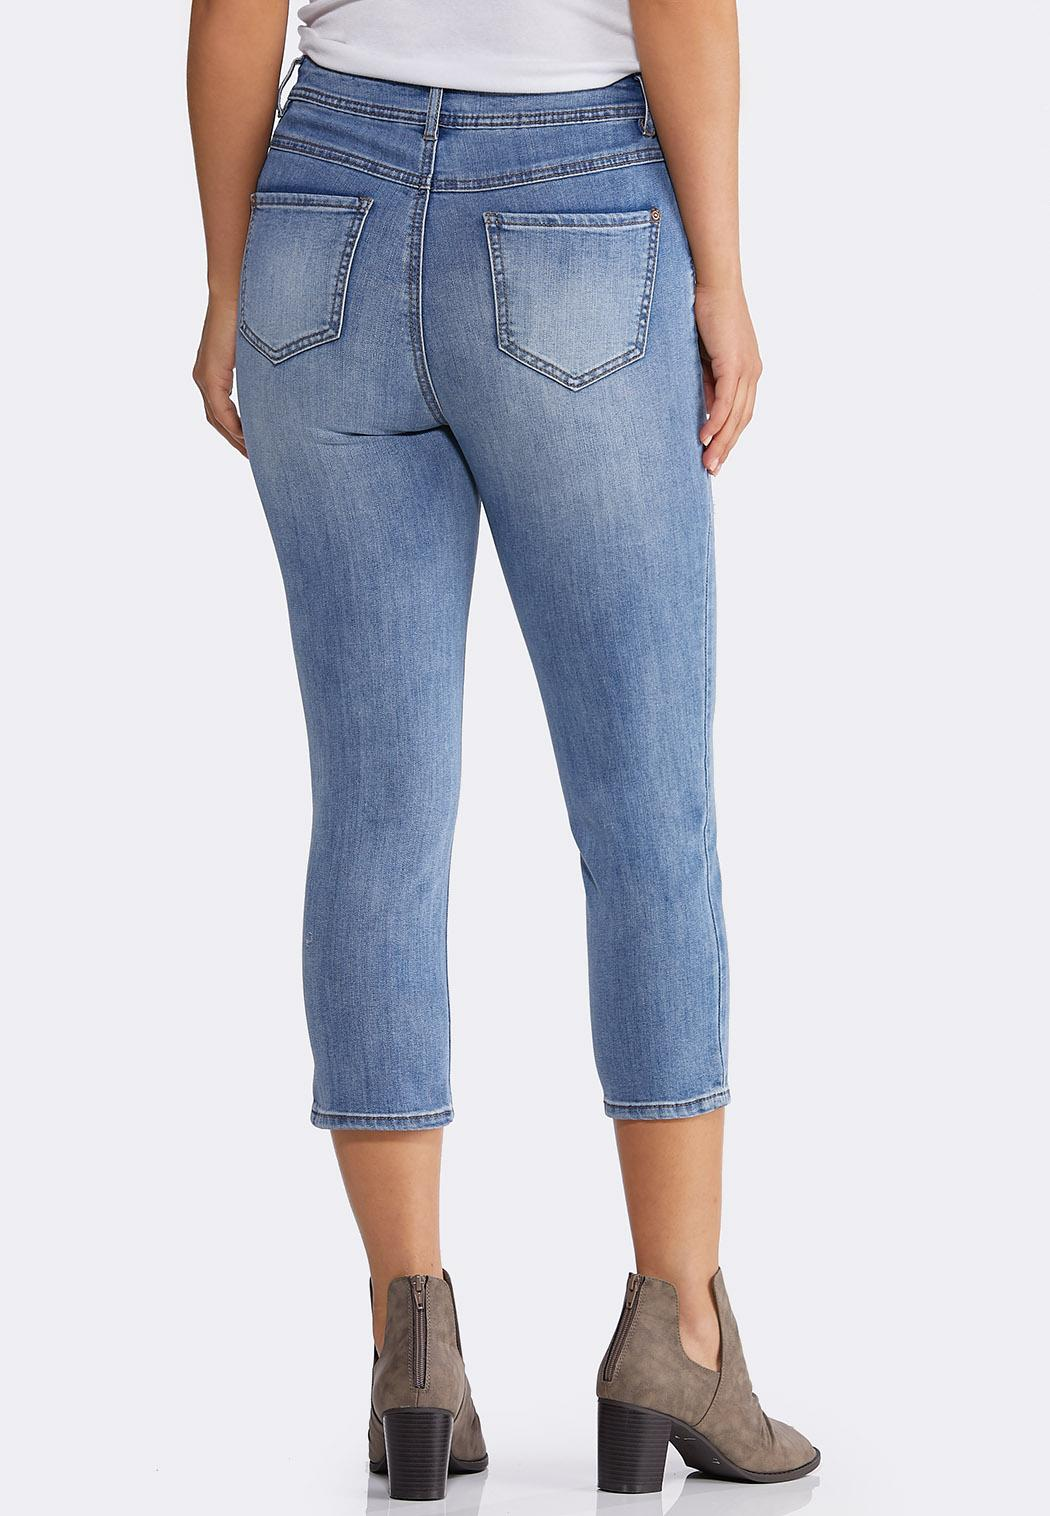 Cropped Distressed Skinny Jeans (Item #44198091)